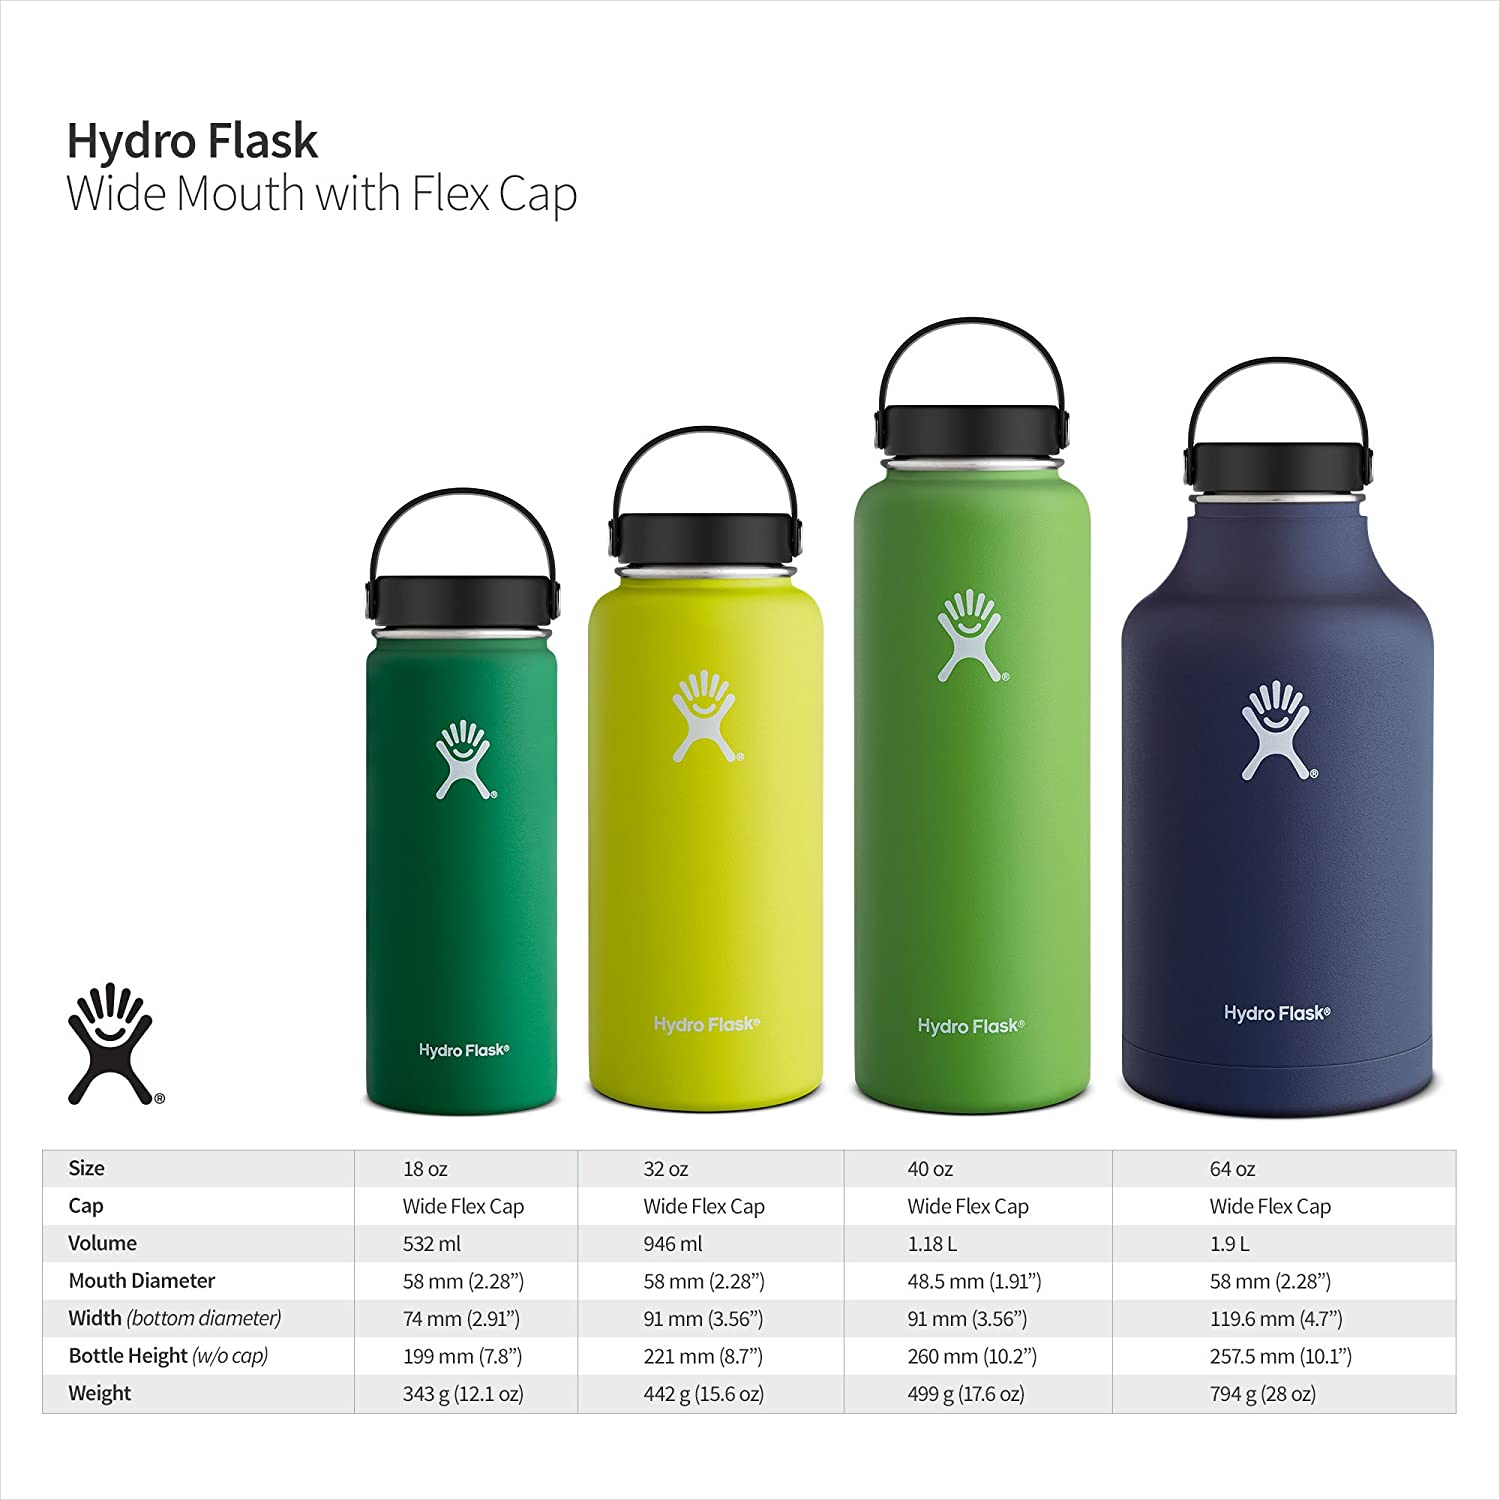 Hydro Flask 32 oz Water Bottle - Stainless Steel & Vacuum Insulated - Wide  Mouth with Leak Proof Flex Cap - White